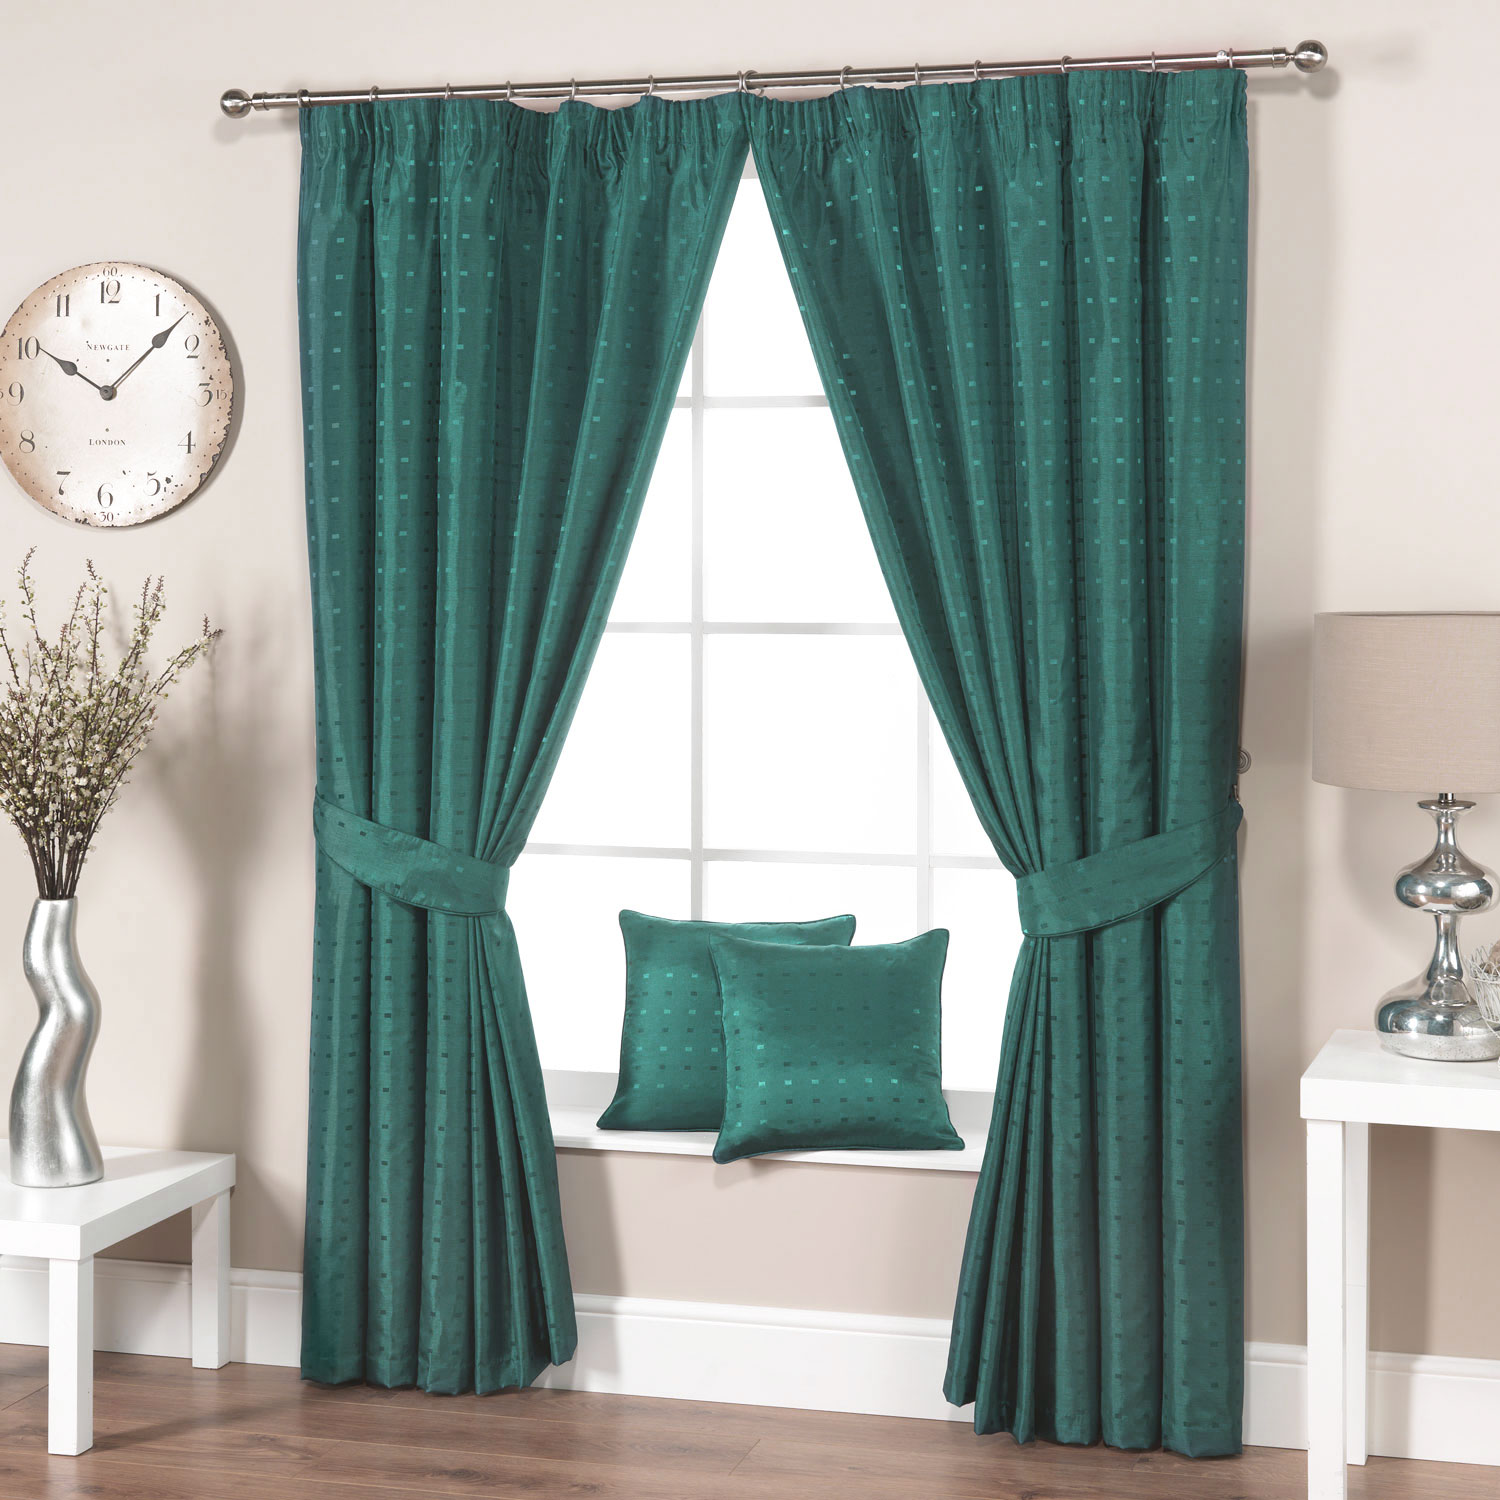 Cheap Curtains amp Drapes Online  Curtains amp Drapes for 2018